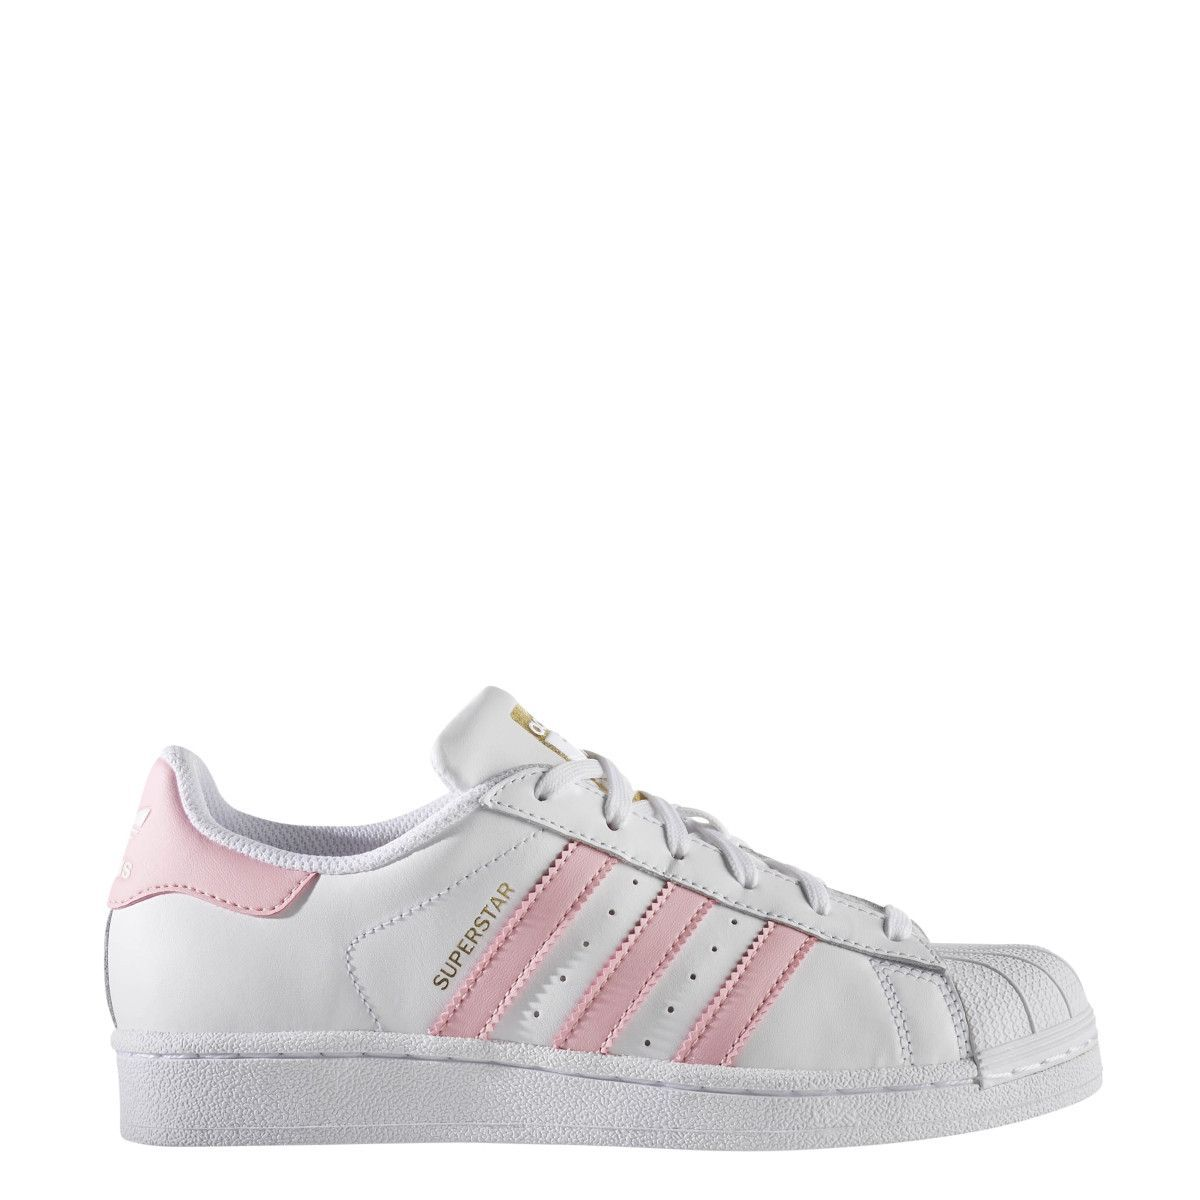 adidas superstar bambini scarpe adidas superstar, superstar e adidas